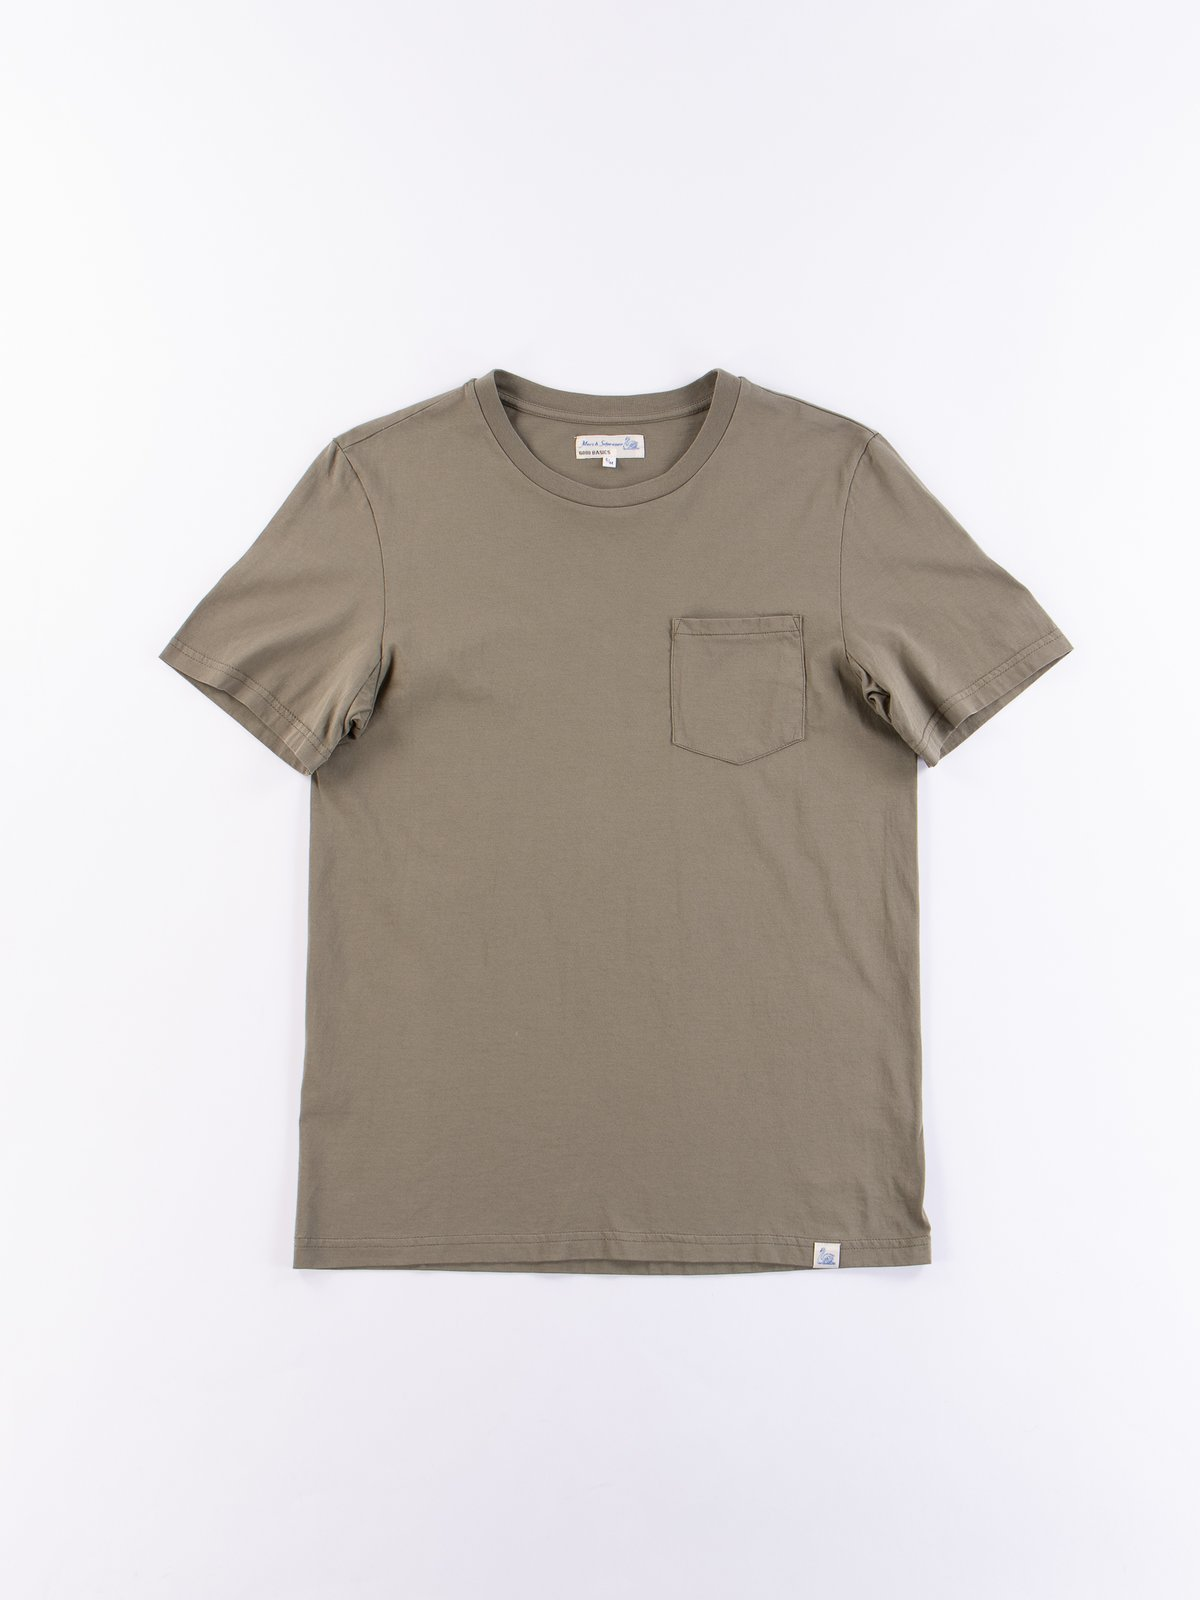 Army Good Basics CTP01 Pocket Crew Neck Tee - Image 1